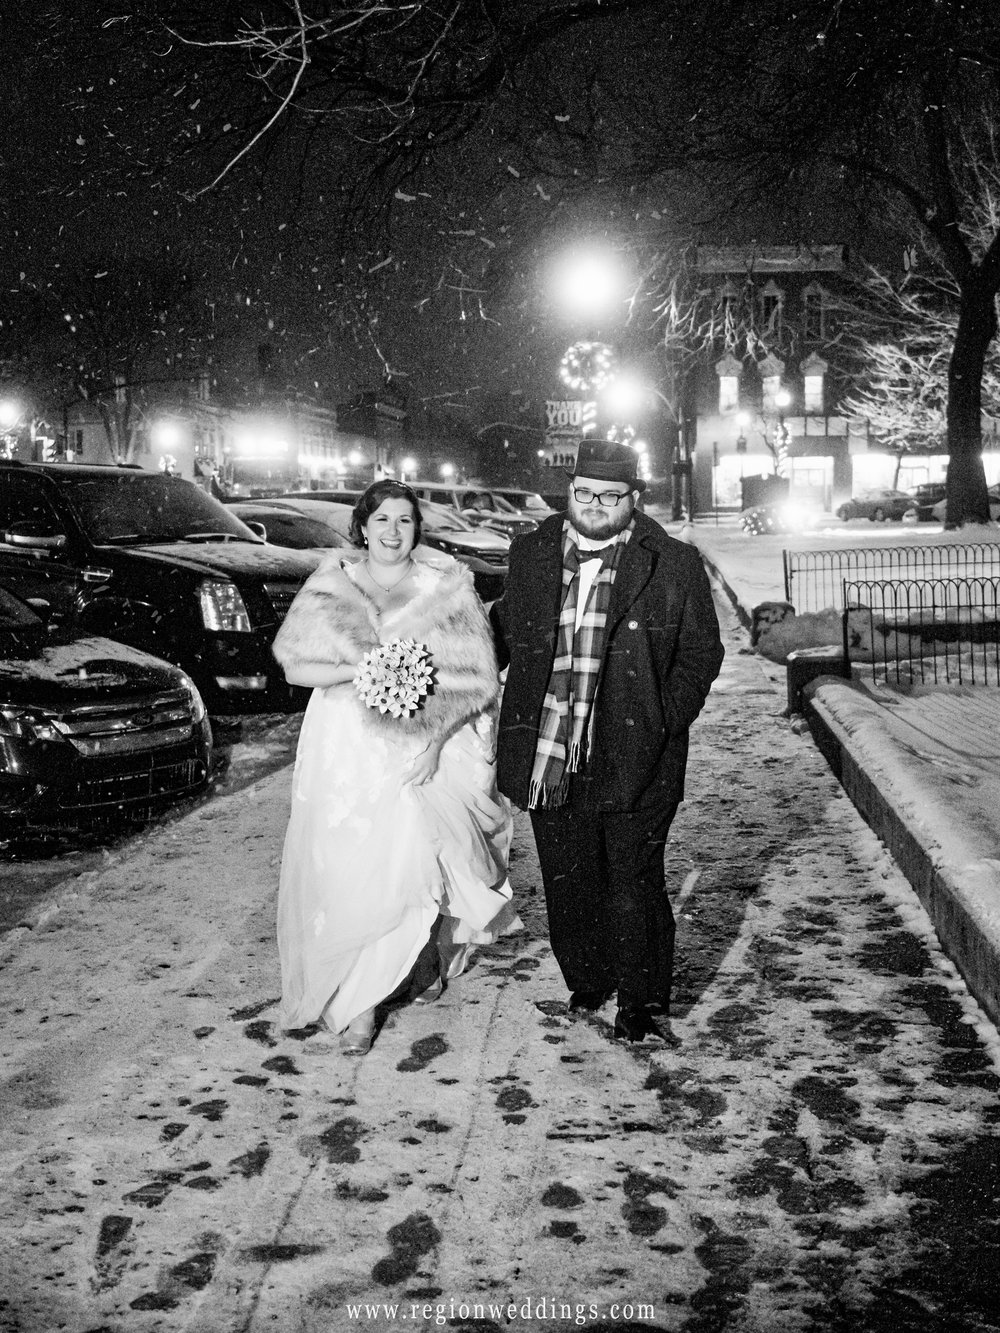 Snow fills the air as the bride and groom walk back to their limo in downtown Crown Point.